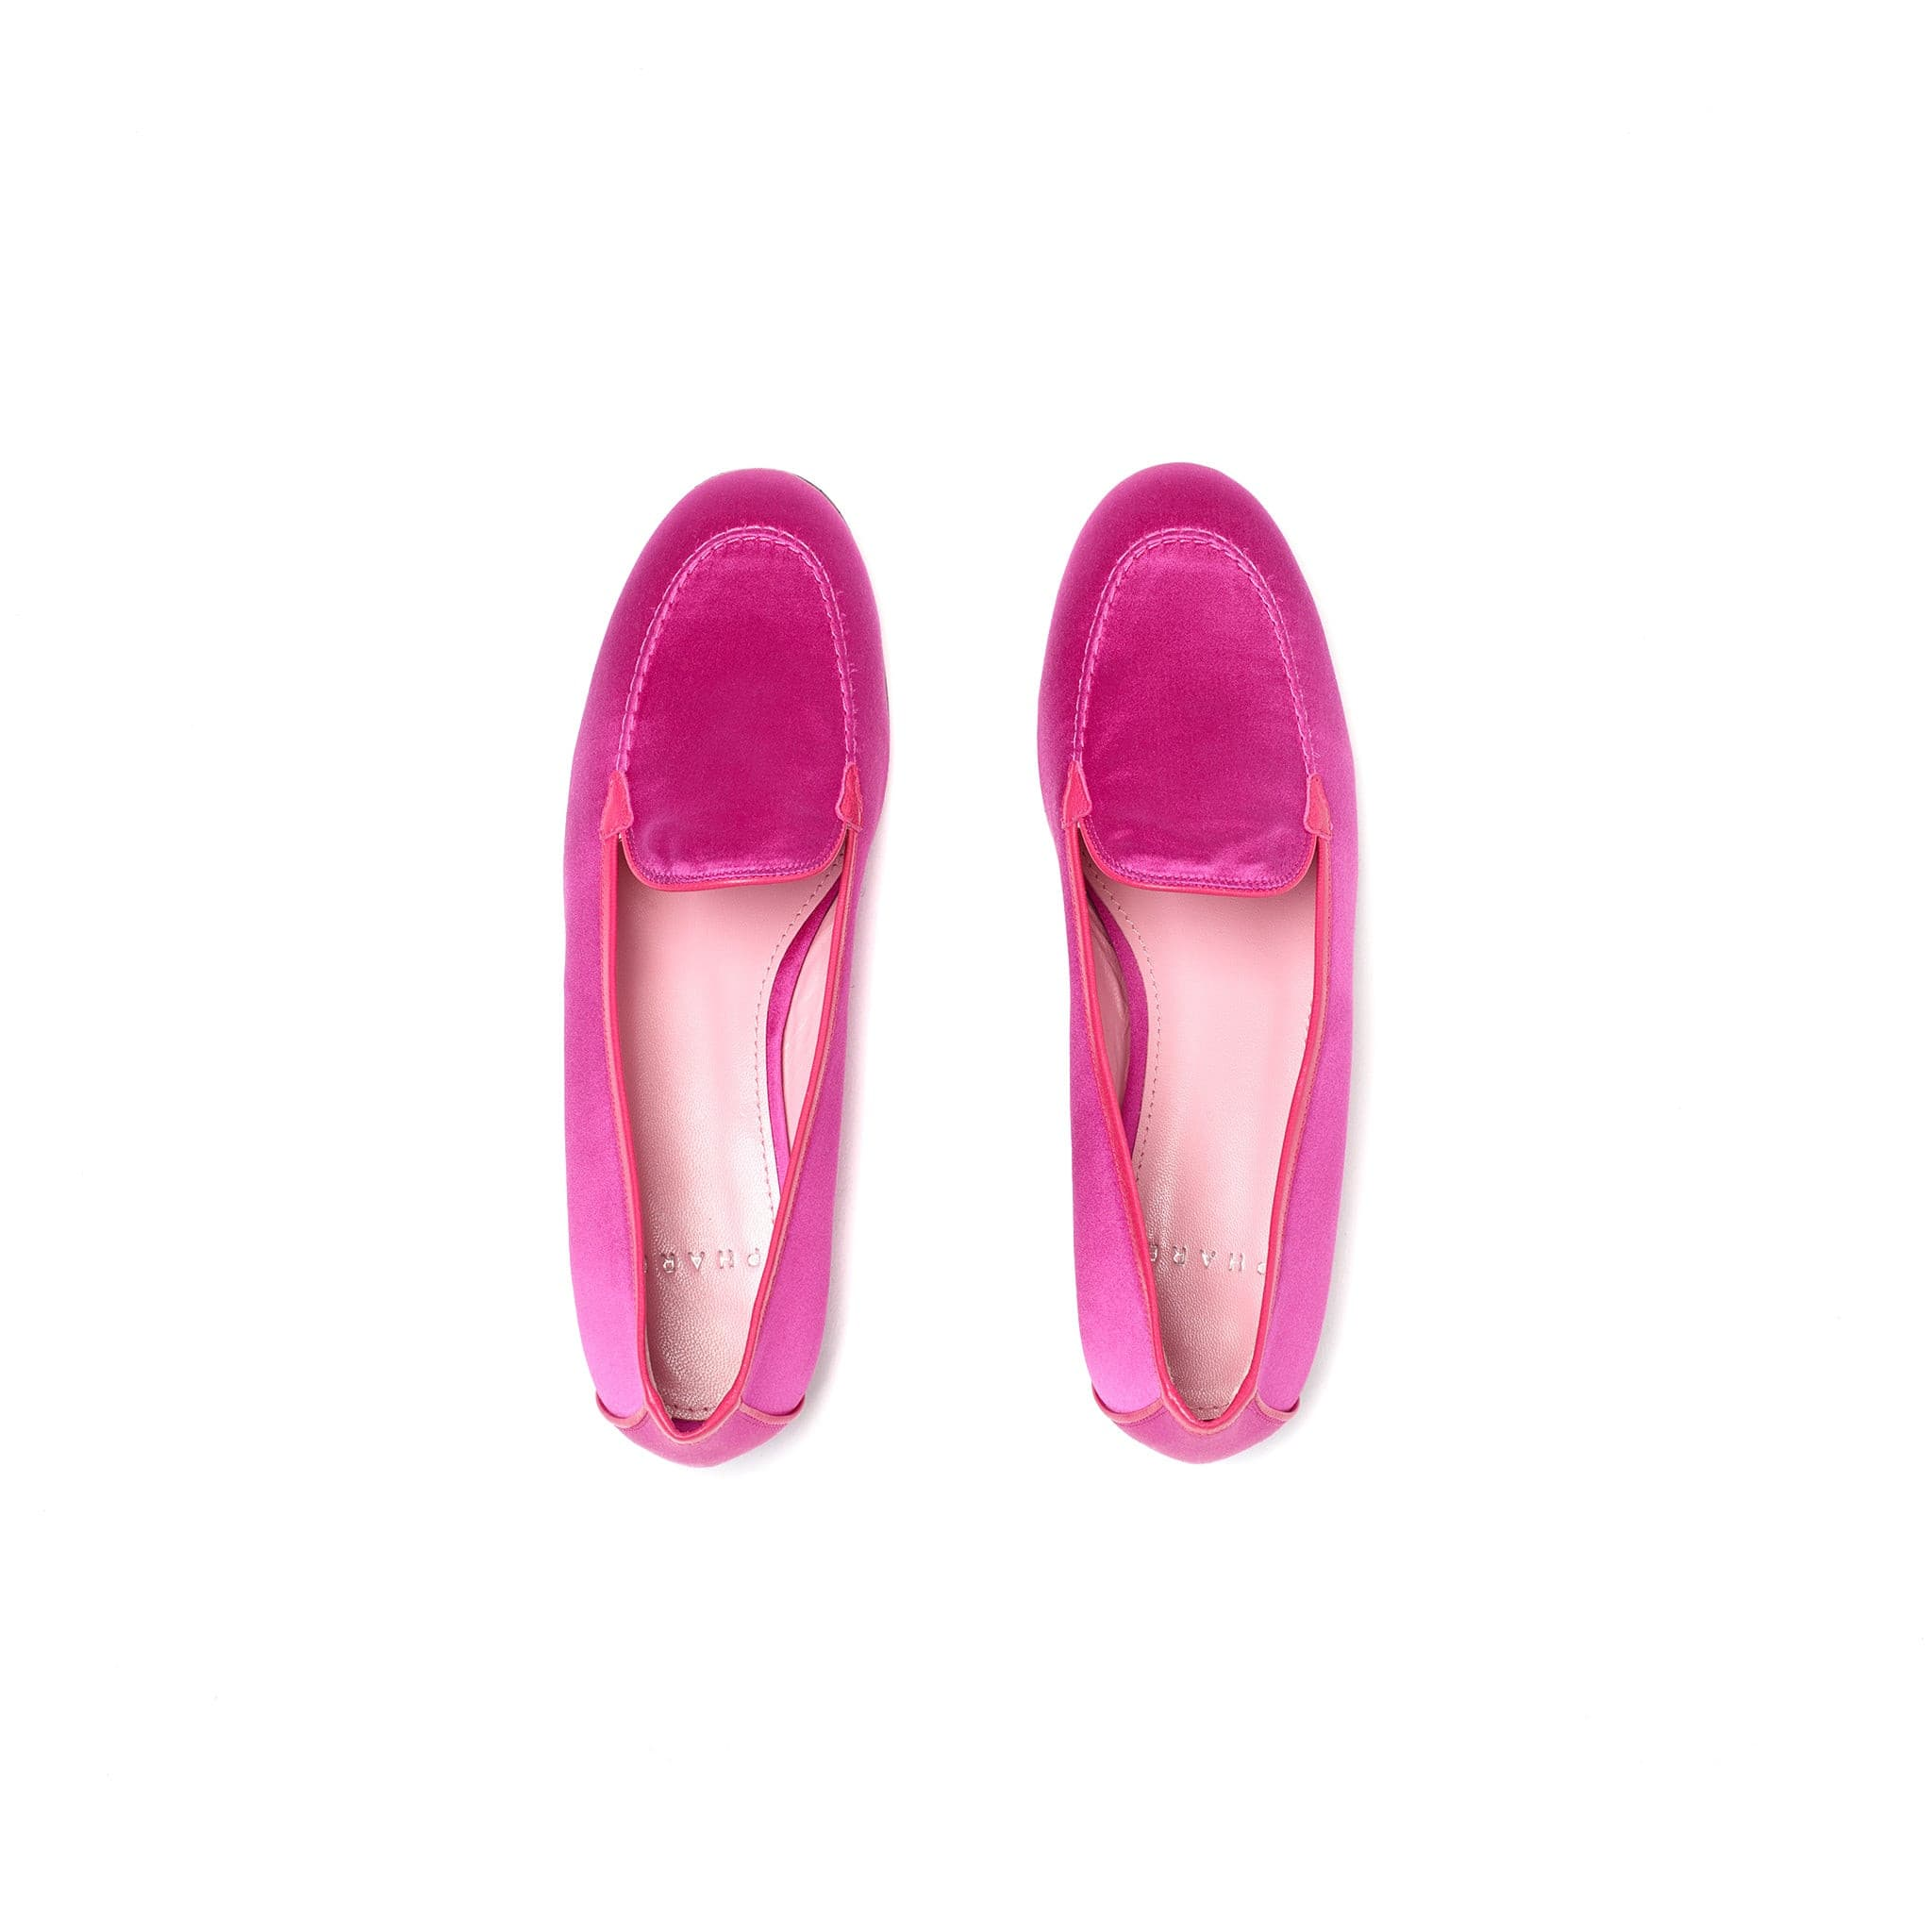 Phare classic loafer in magenta silk satin top view